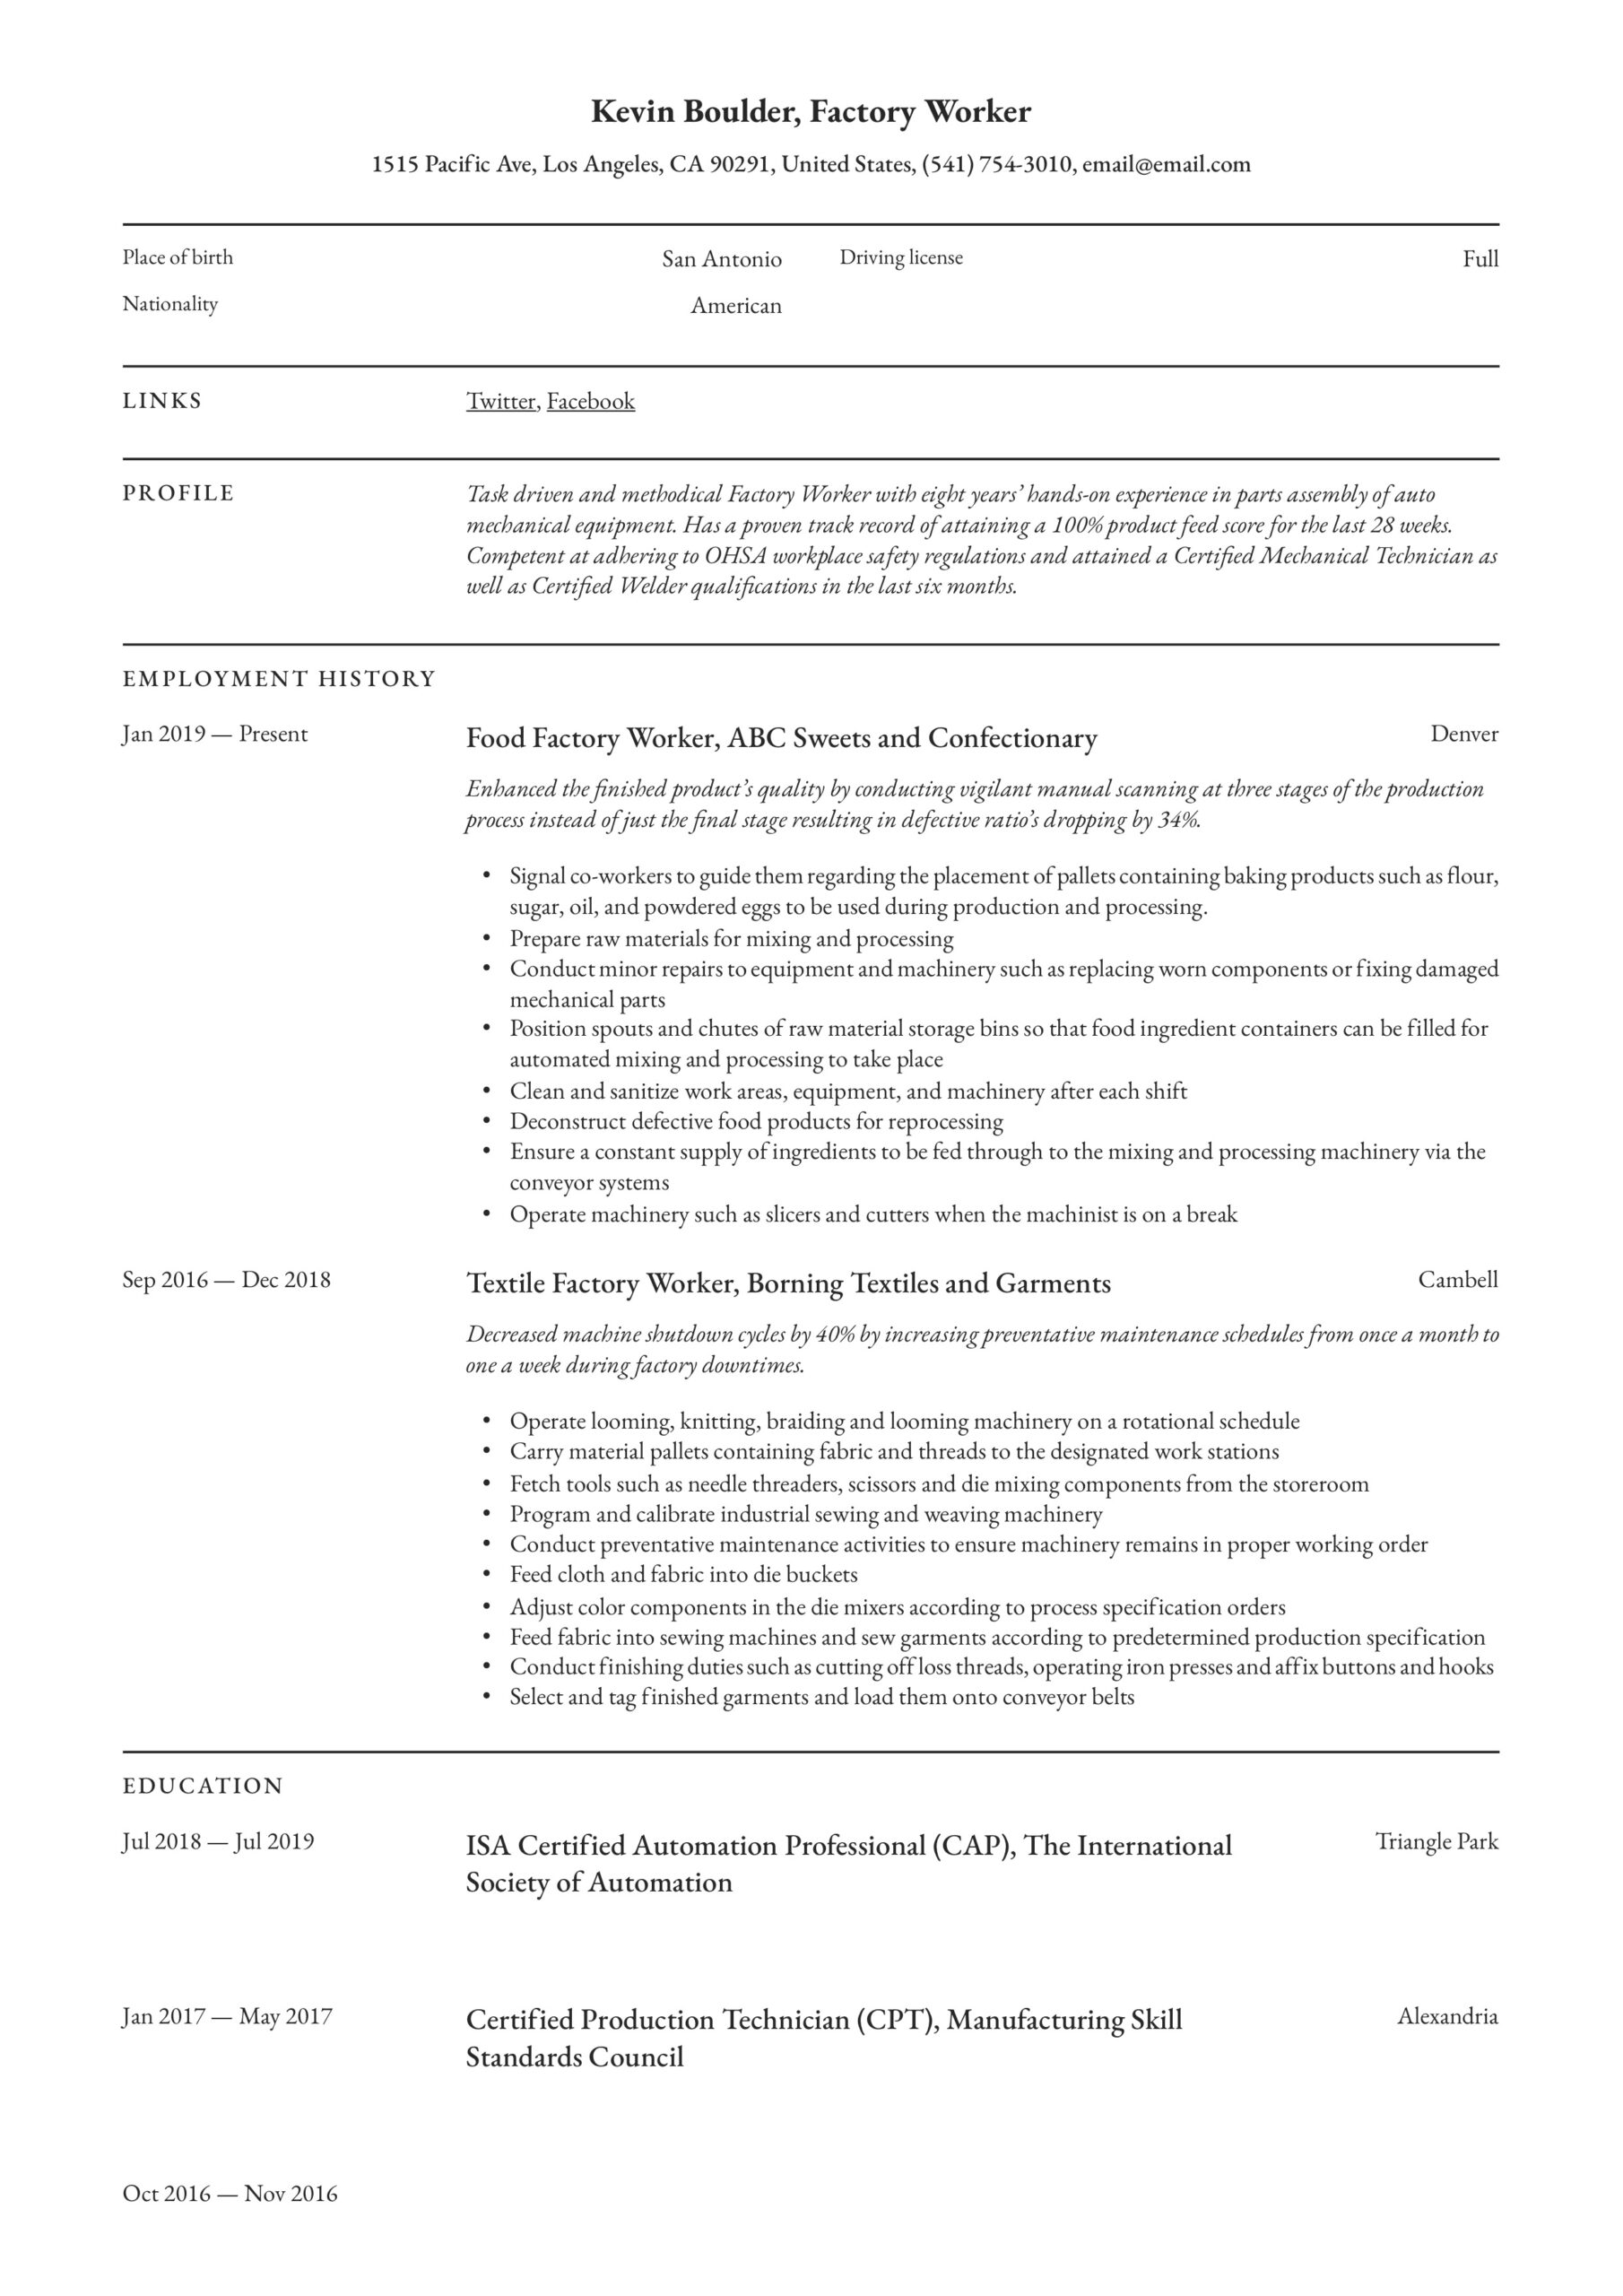 factory worker resume writing guide examples job description salon owner update yoga Resume Factory Worker Job Description Resume